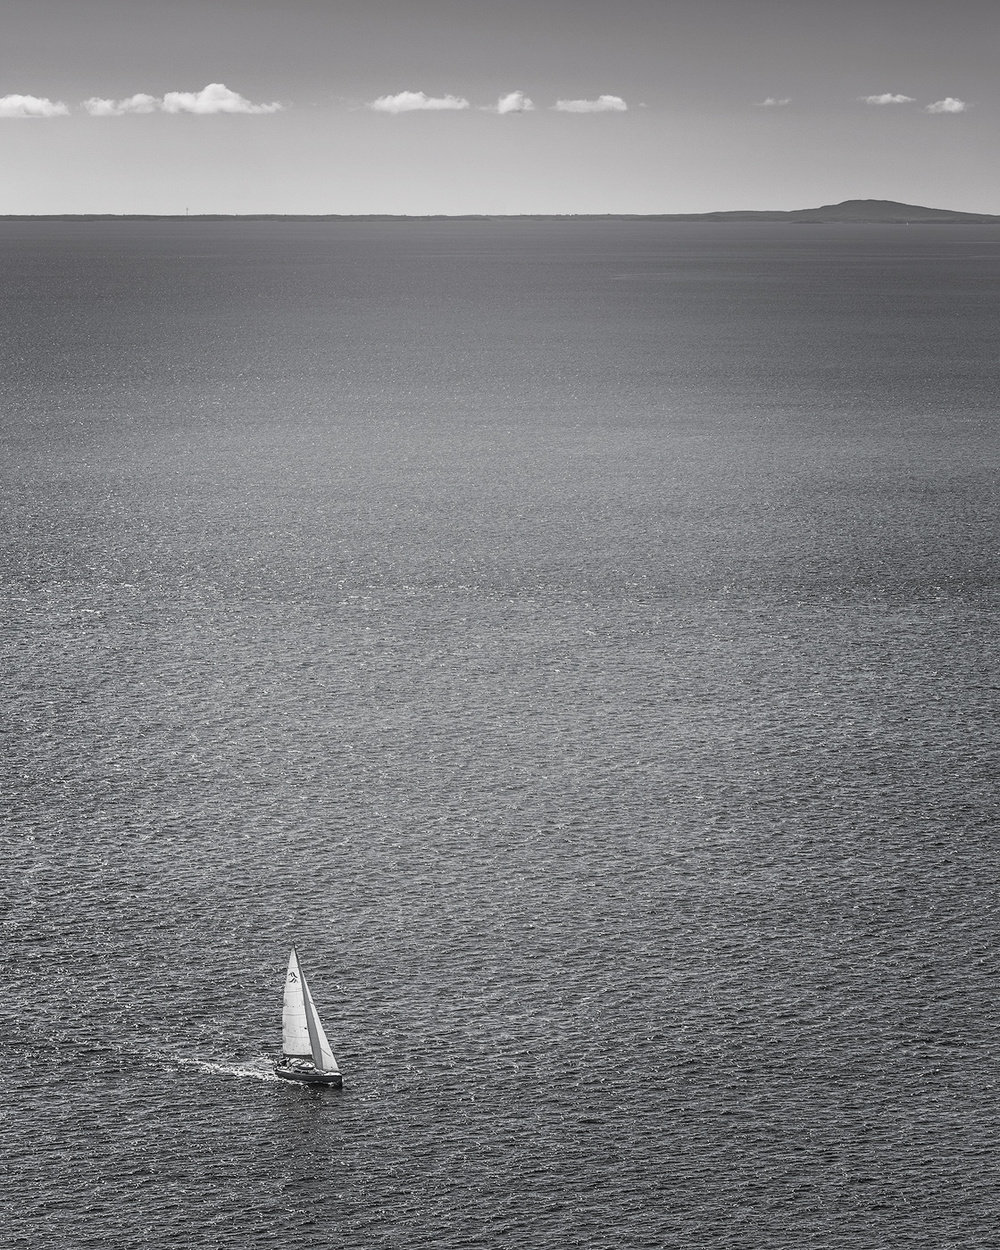 Alone on a wide, wide sea